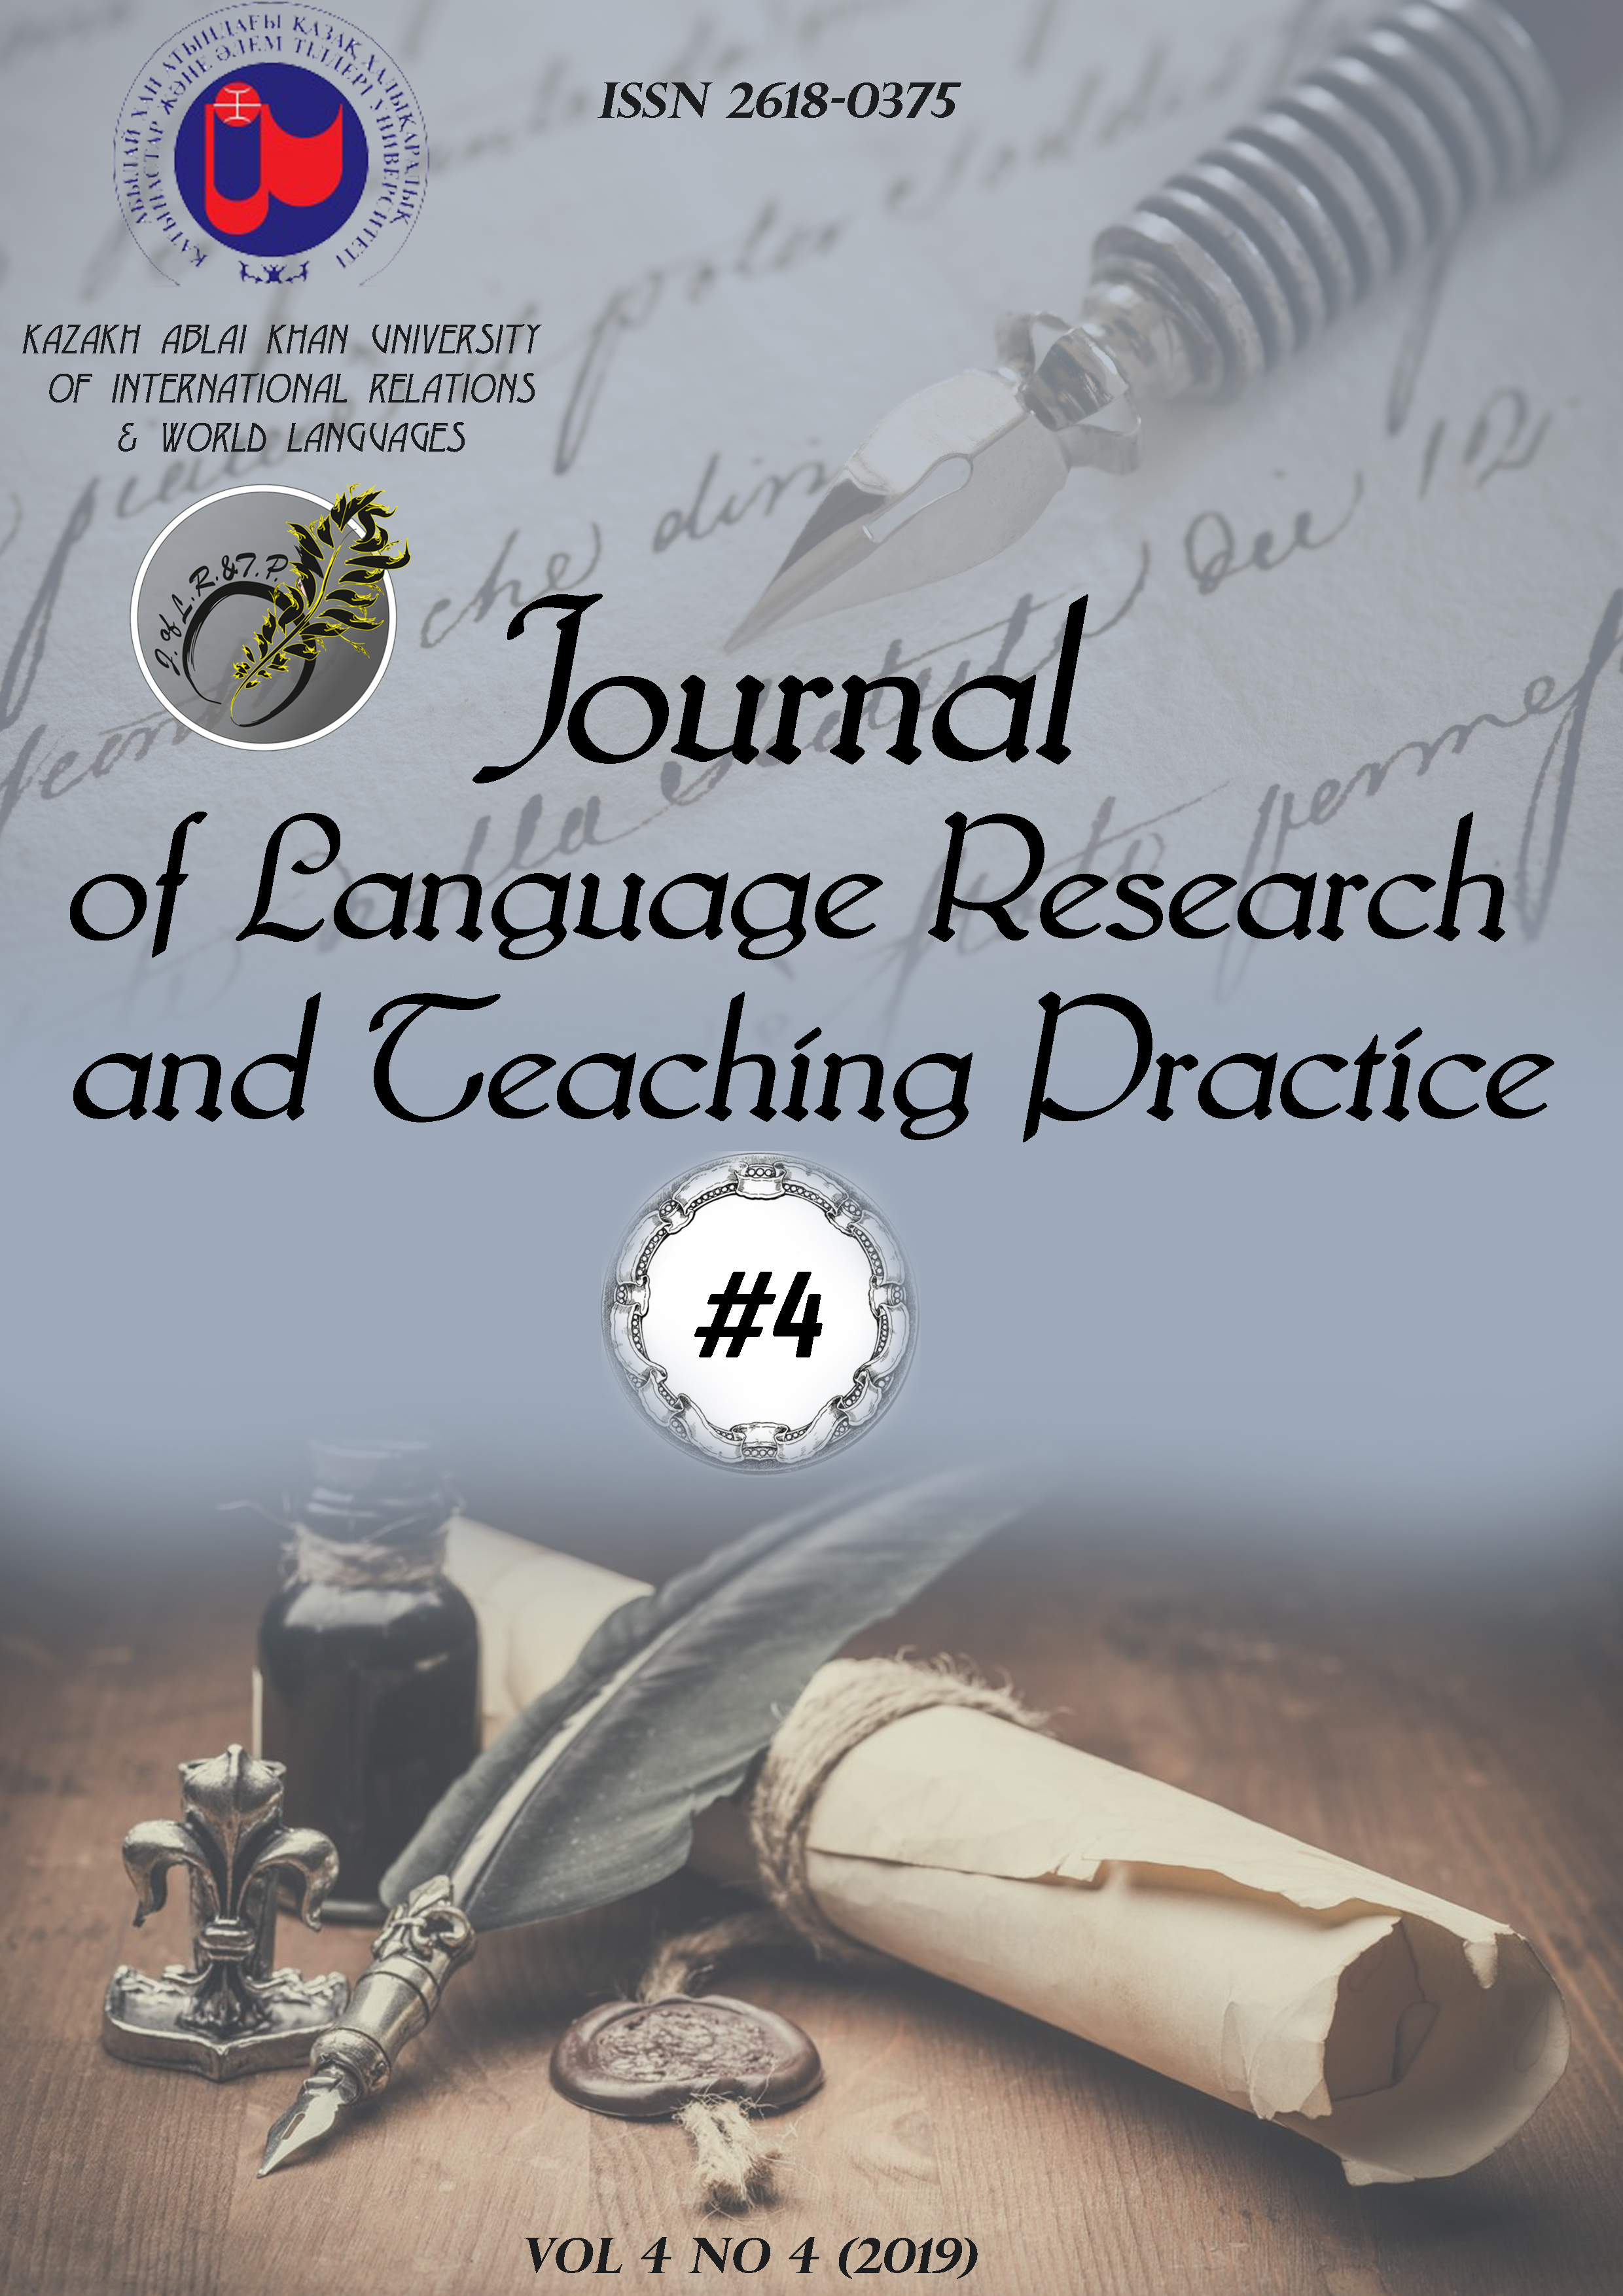 The Journal of Language Research and Teaching Practice